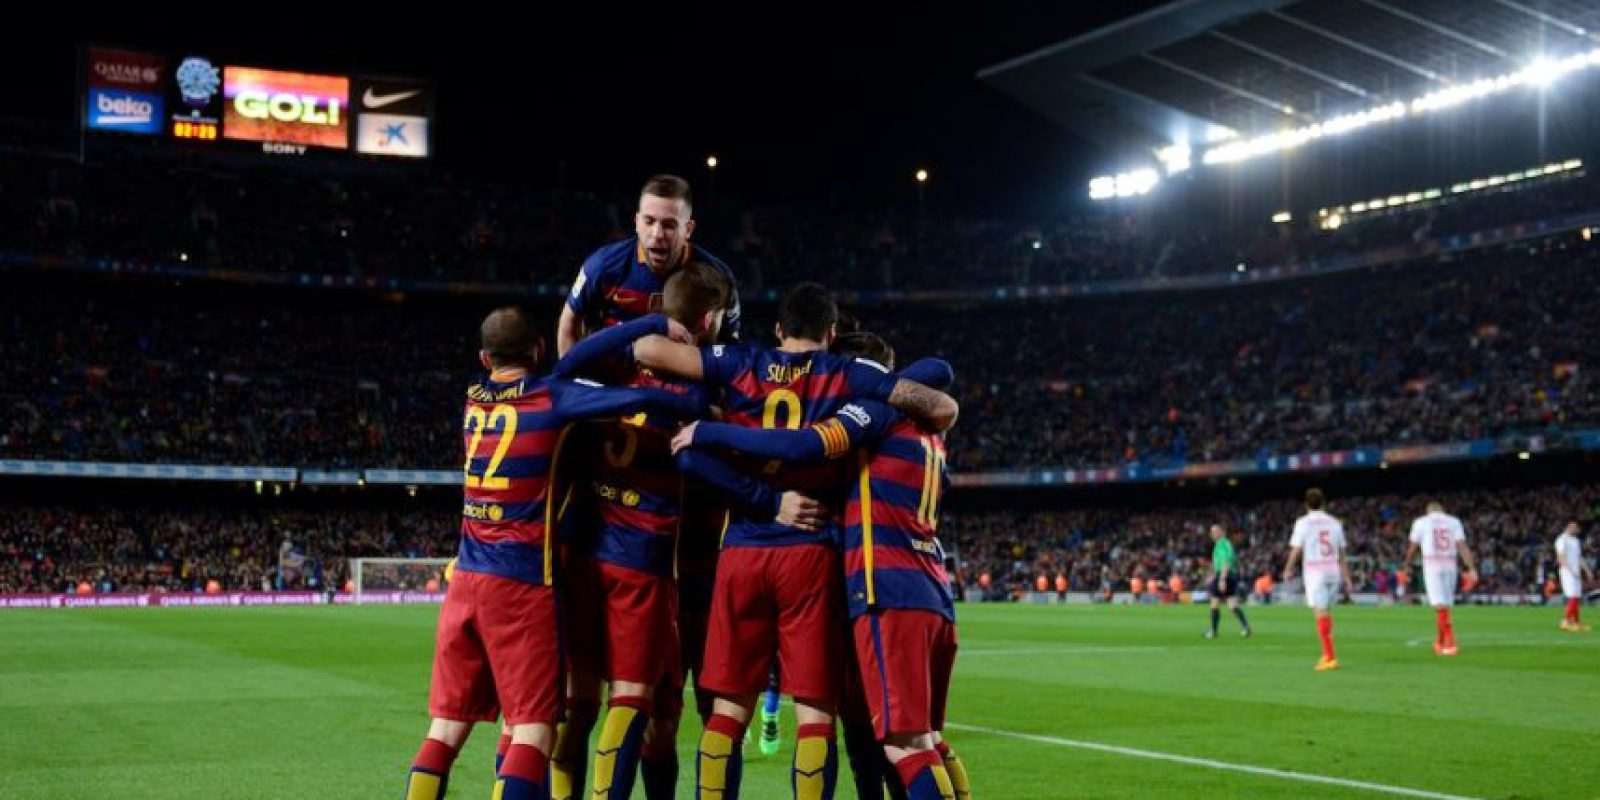 COPA DEL REY: 22 de mayo / Barcelona vs. Sevilla Foto: Getty Images